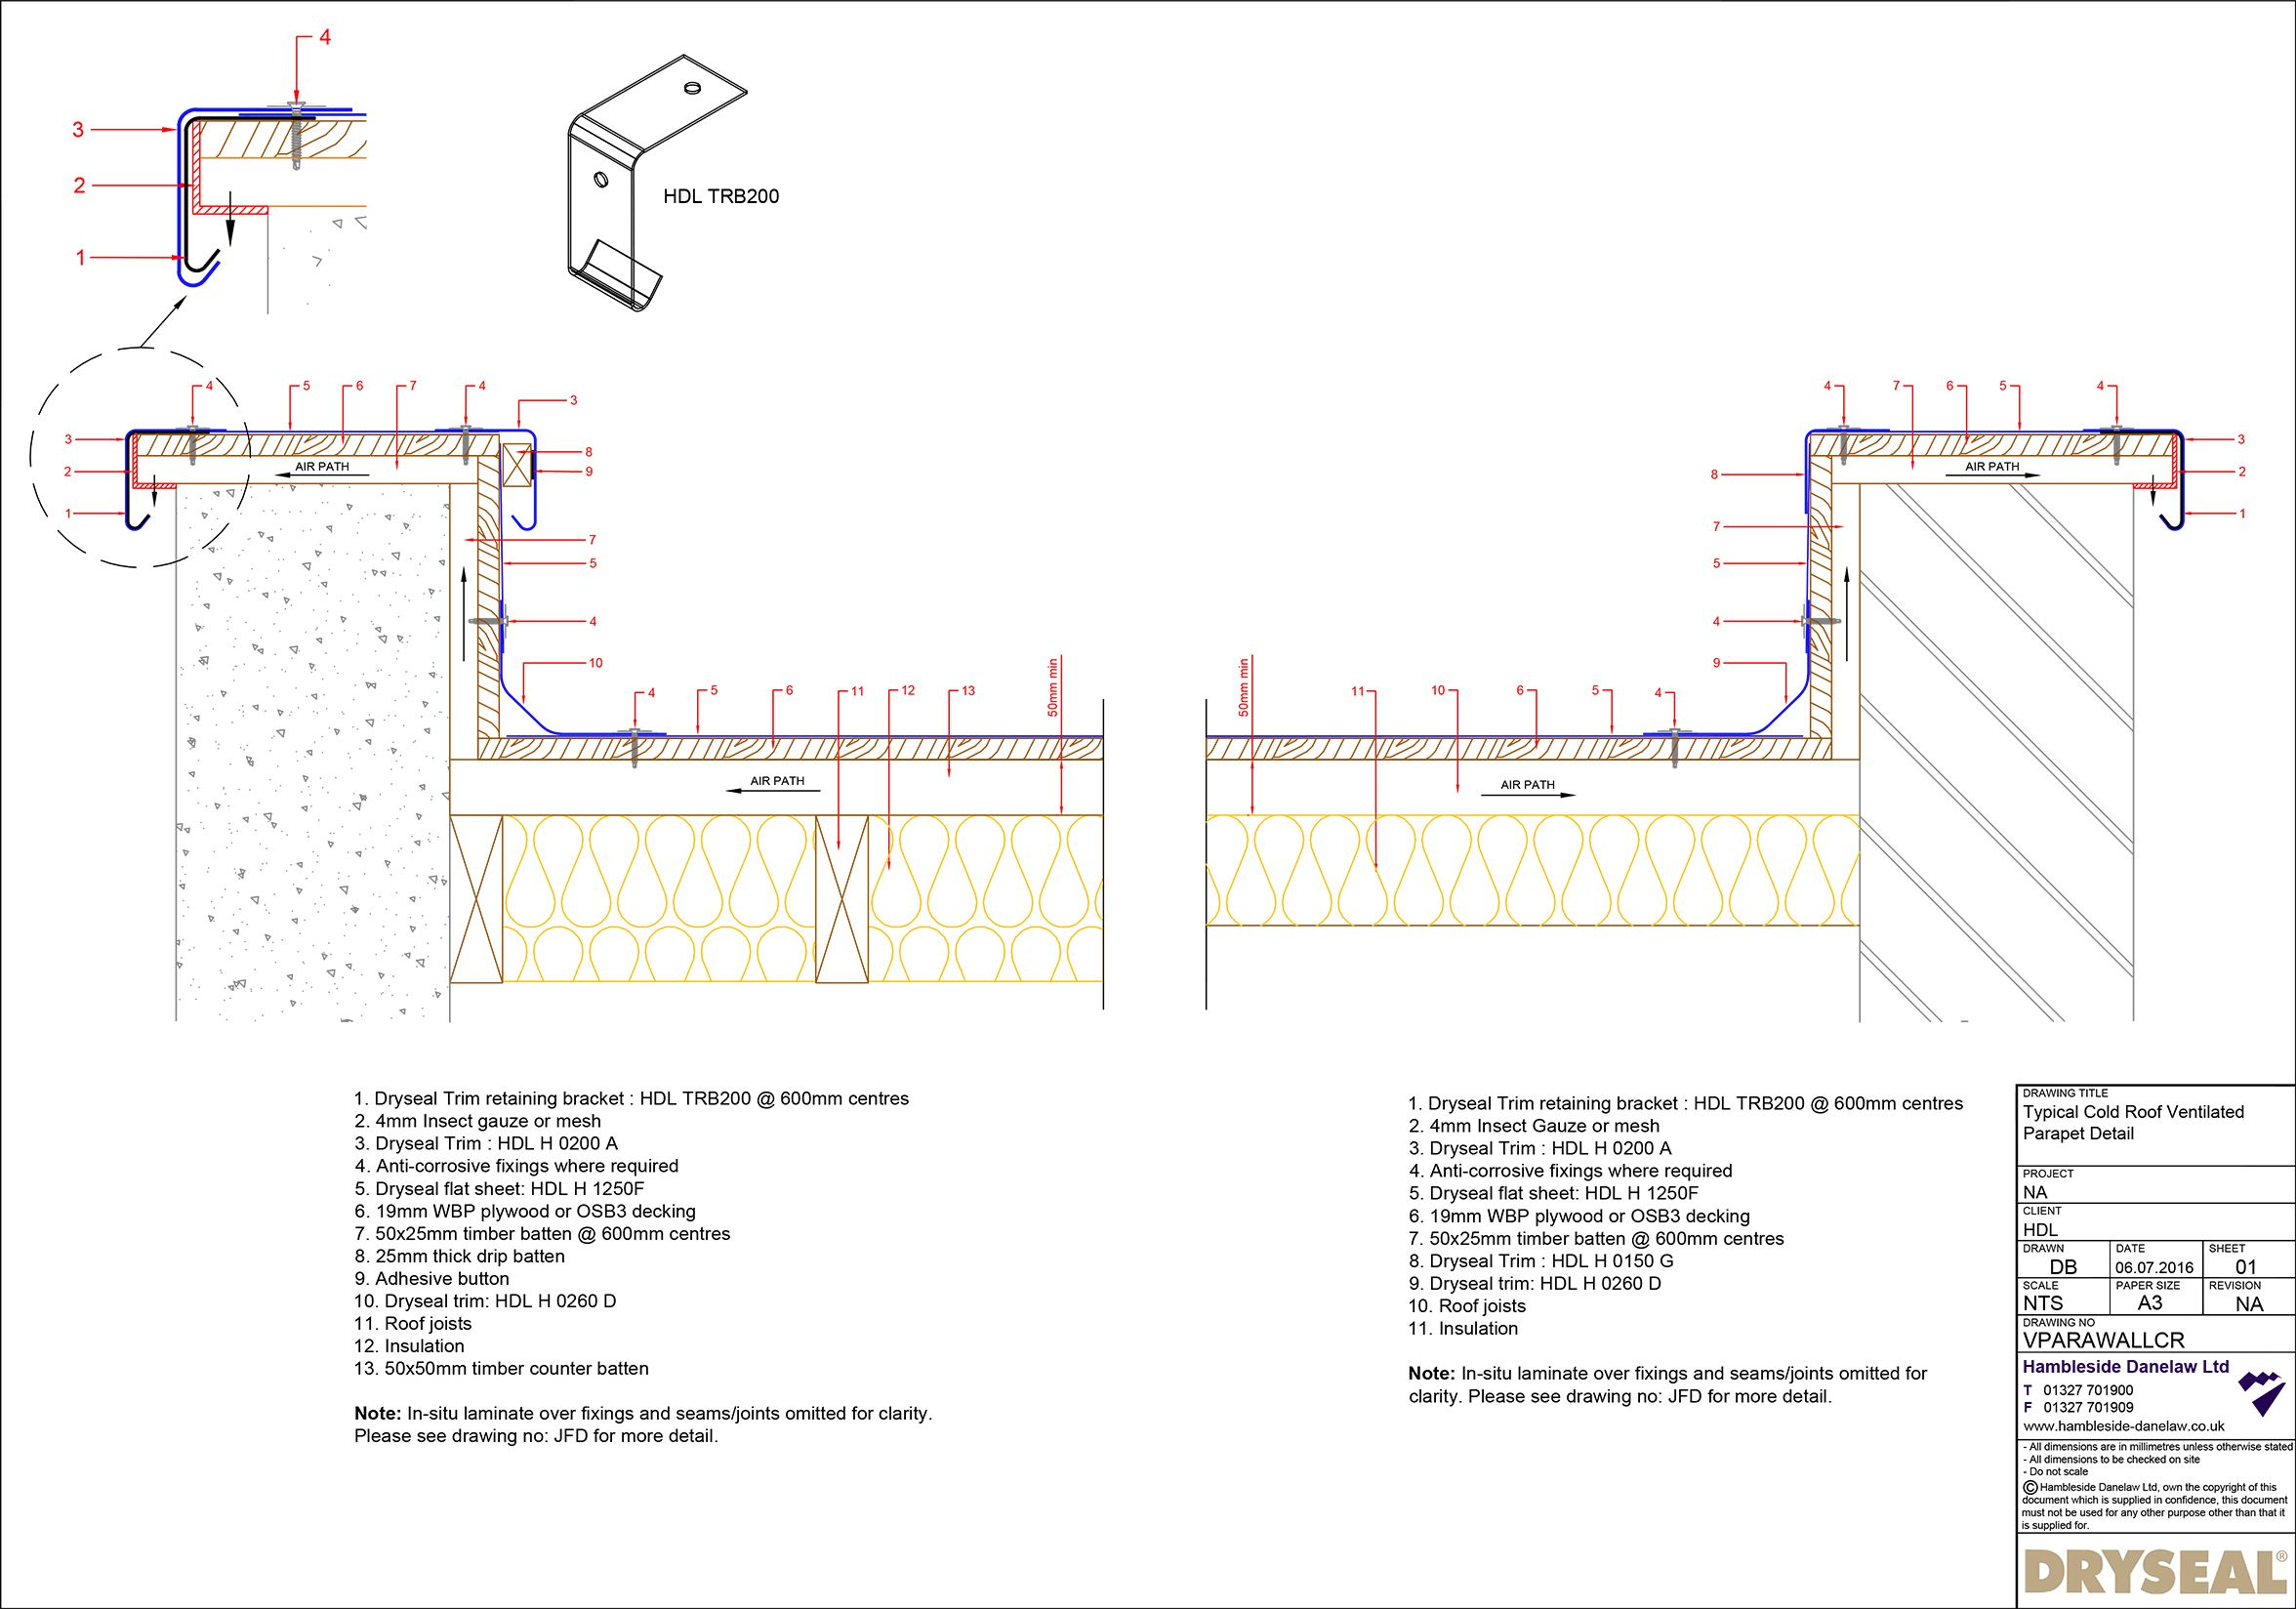 Flat Roof Components And Construction Flatroof Flatroofcomponents Almeidaroofing Roof Repair Roofing Roofing Equipment